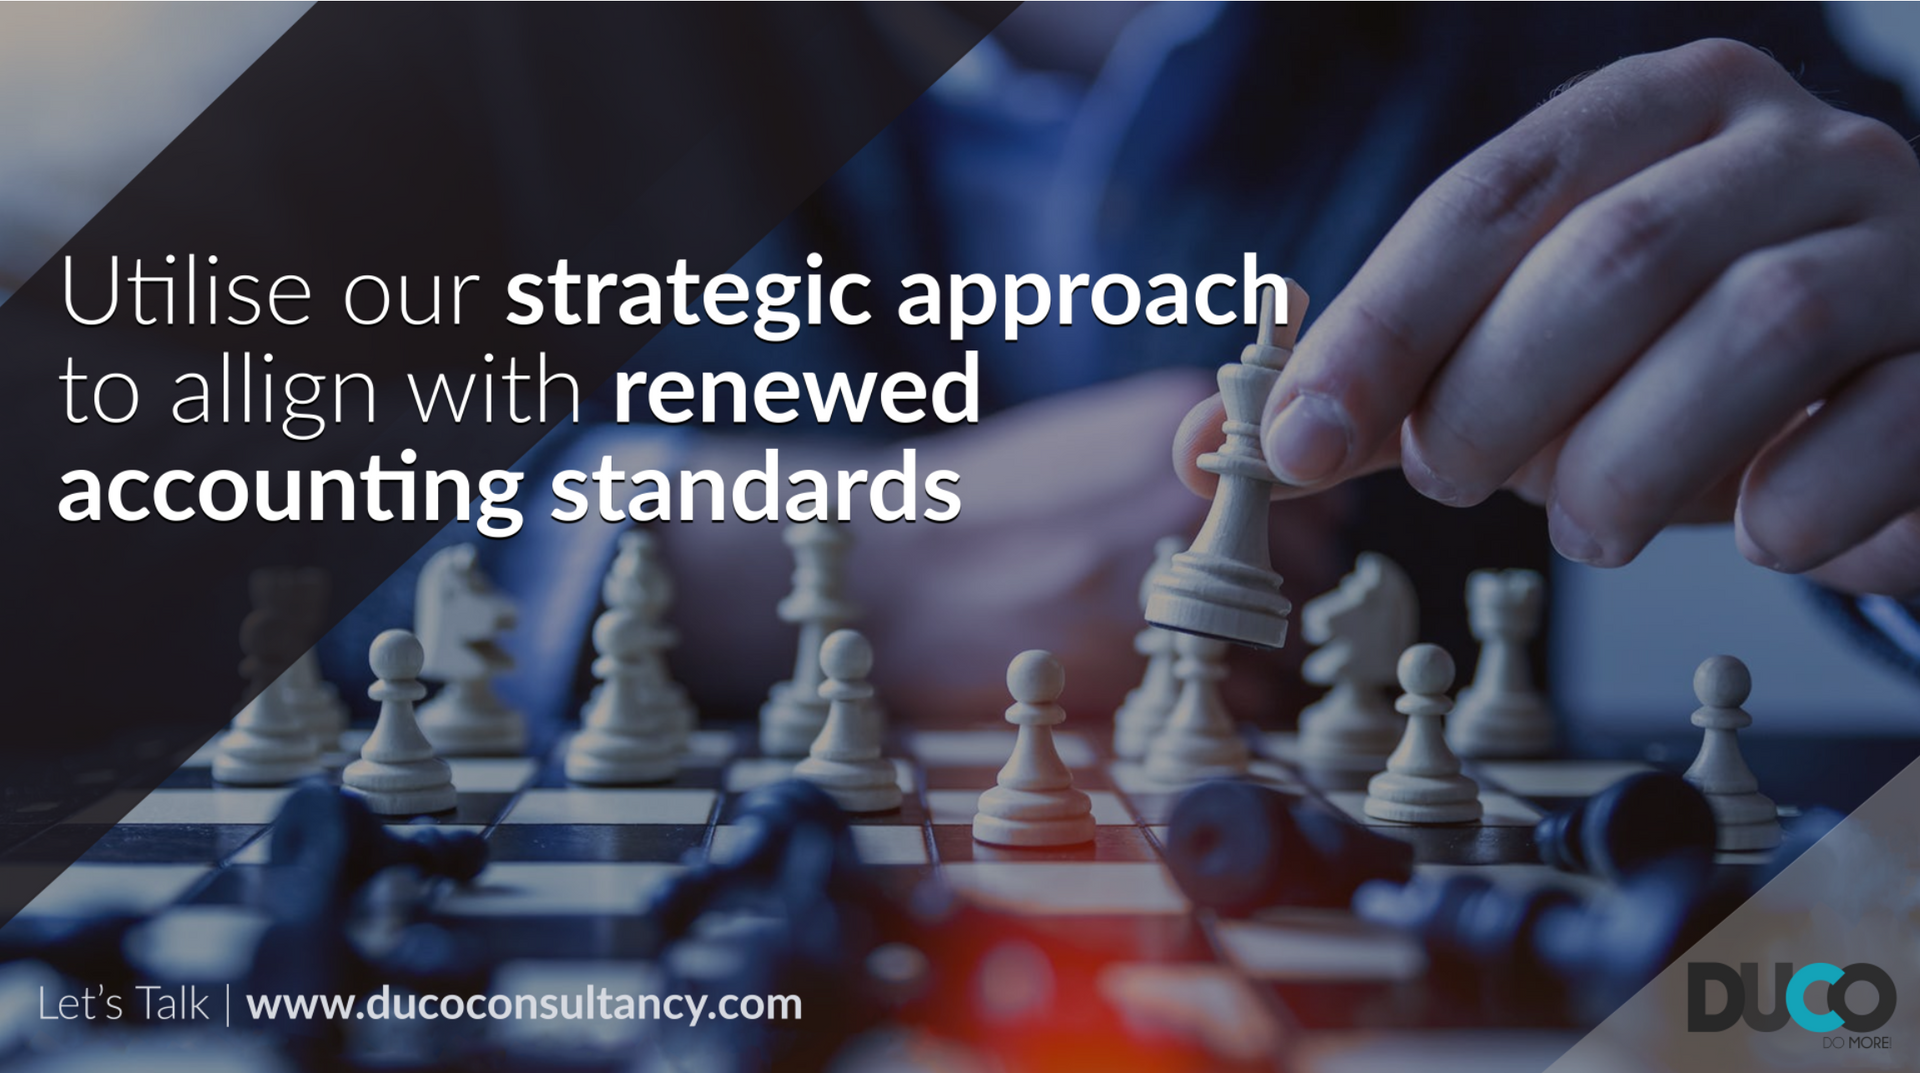 Renew your accountign and operating standards